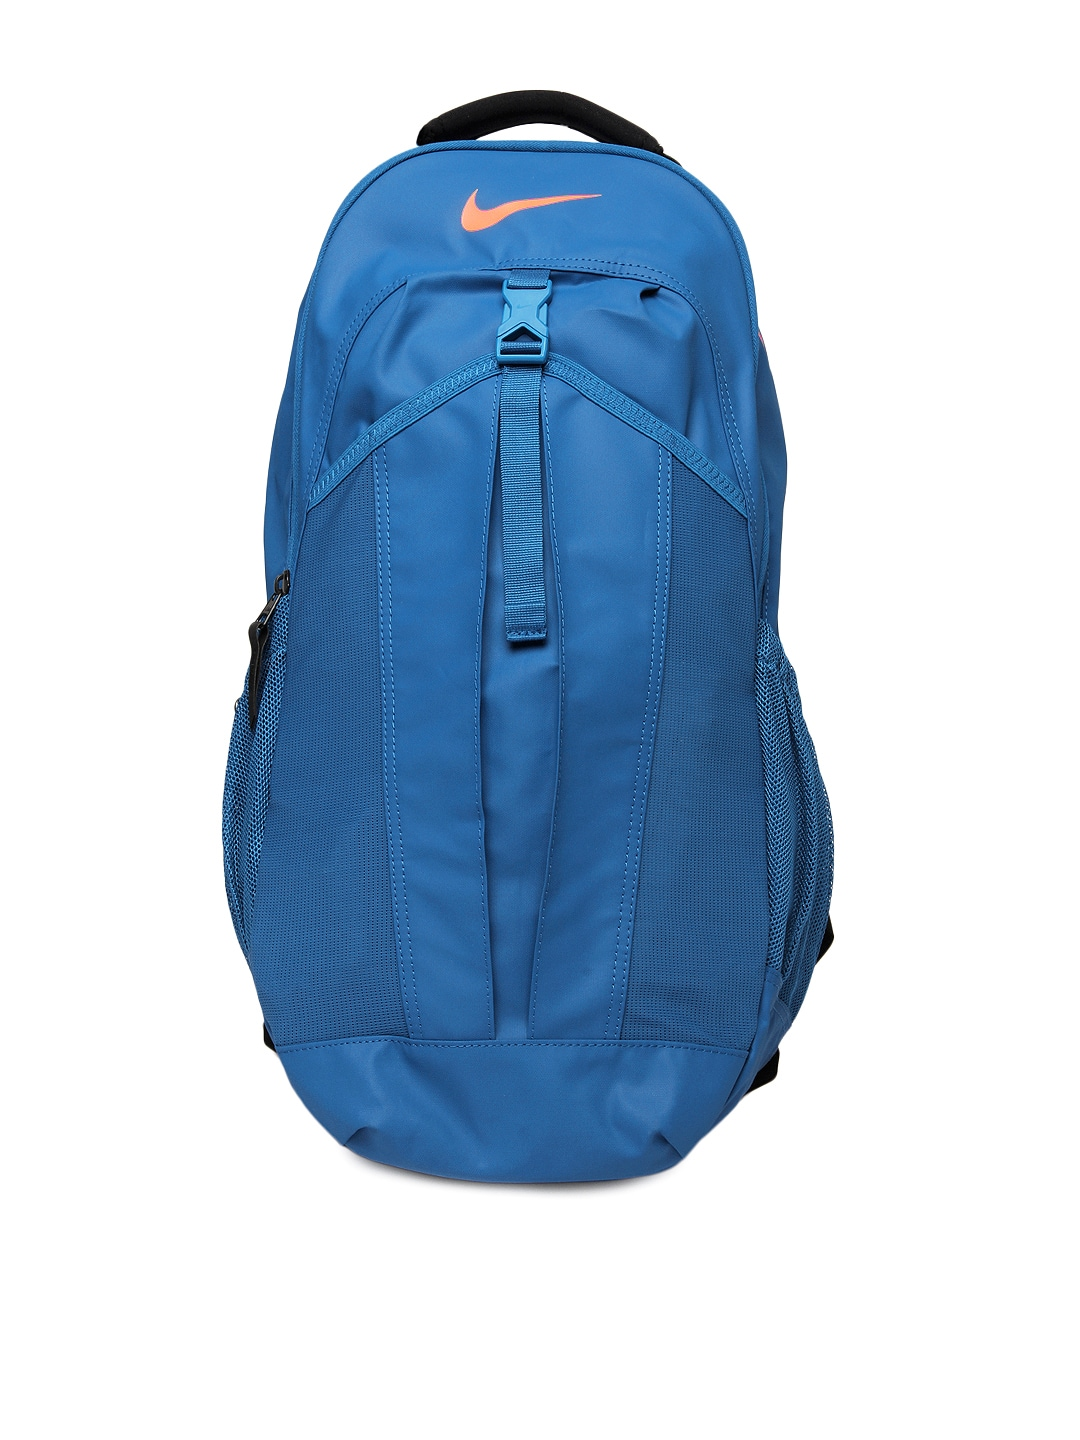 caf916080d7 Nike ba4604-483 Men Blue Ultimatum Max Air Utility Backpack- Price in India